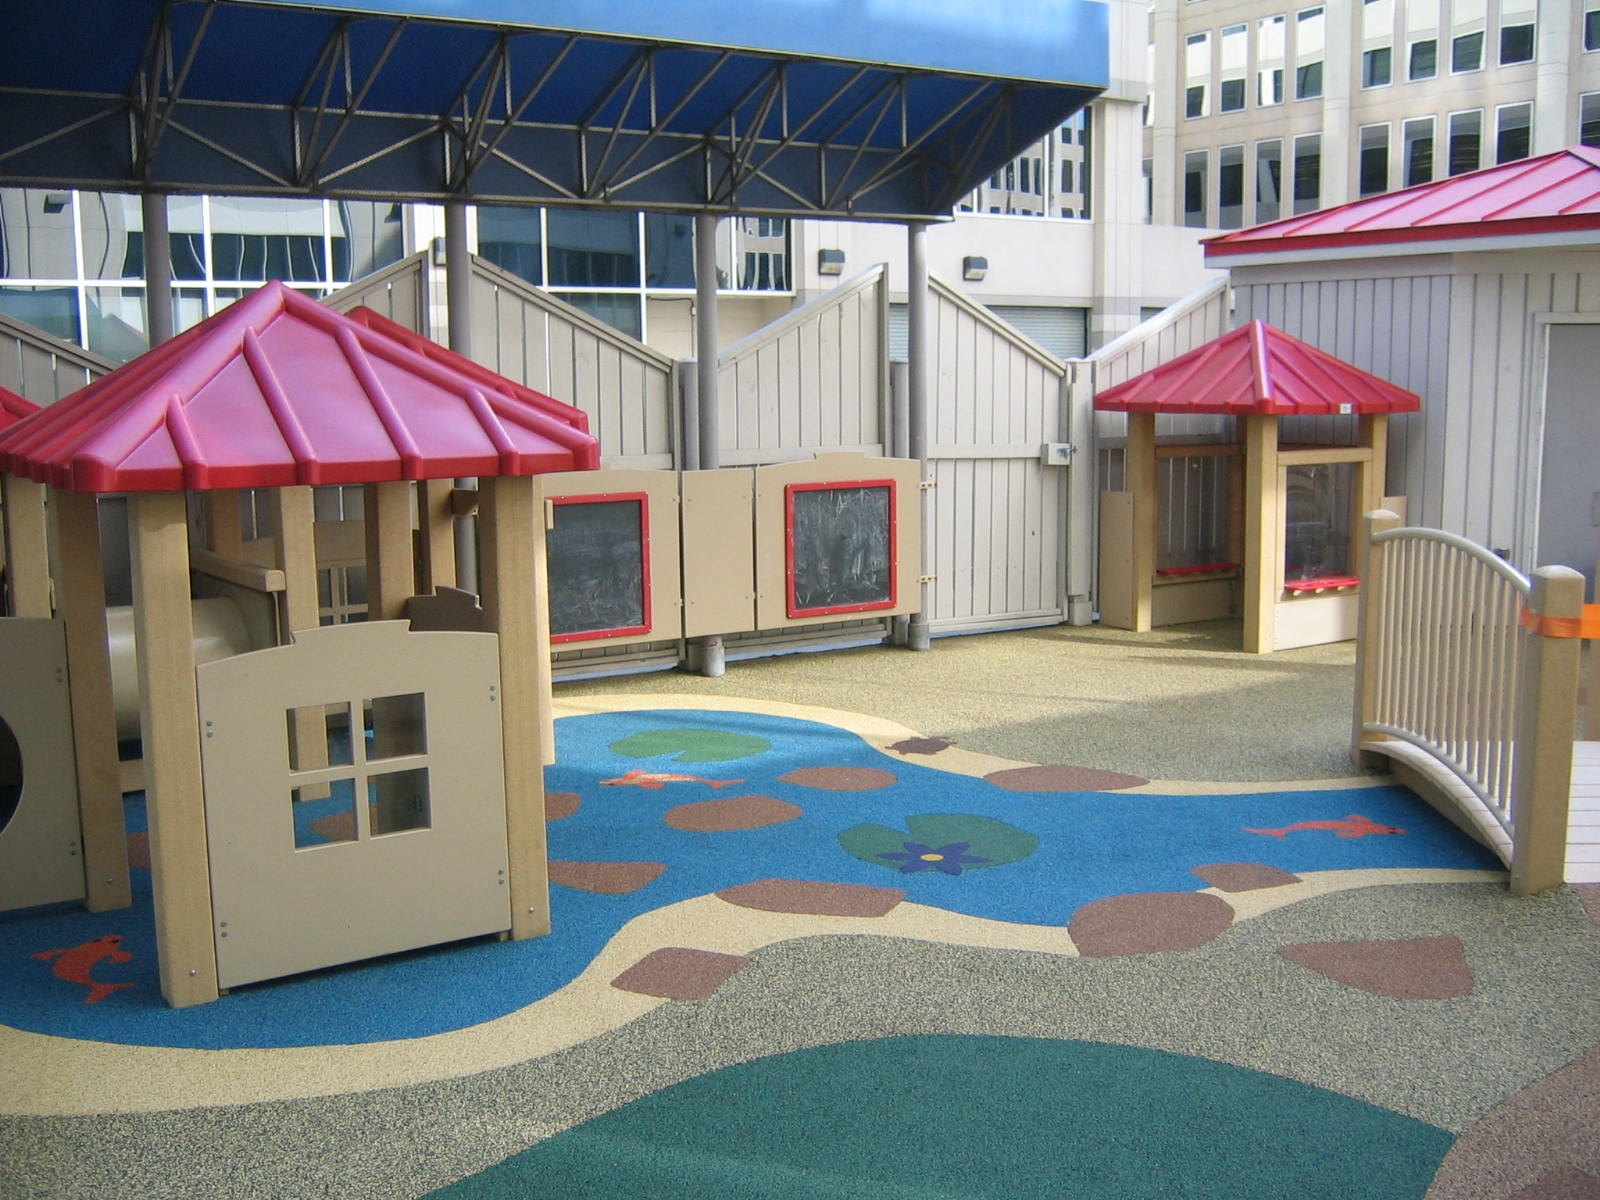 Make your local playground eco-friendly